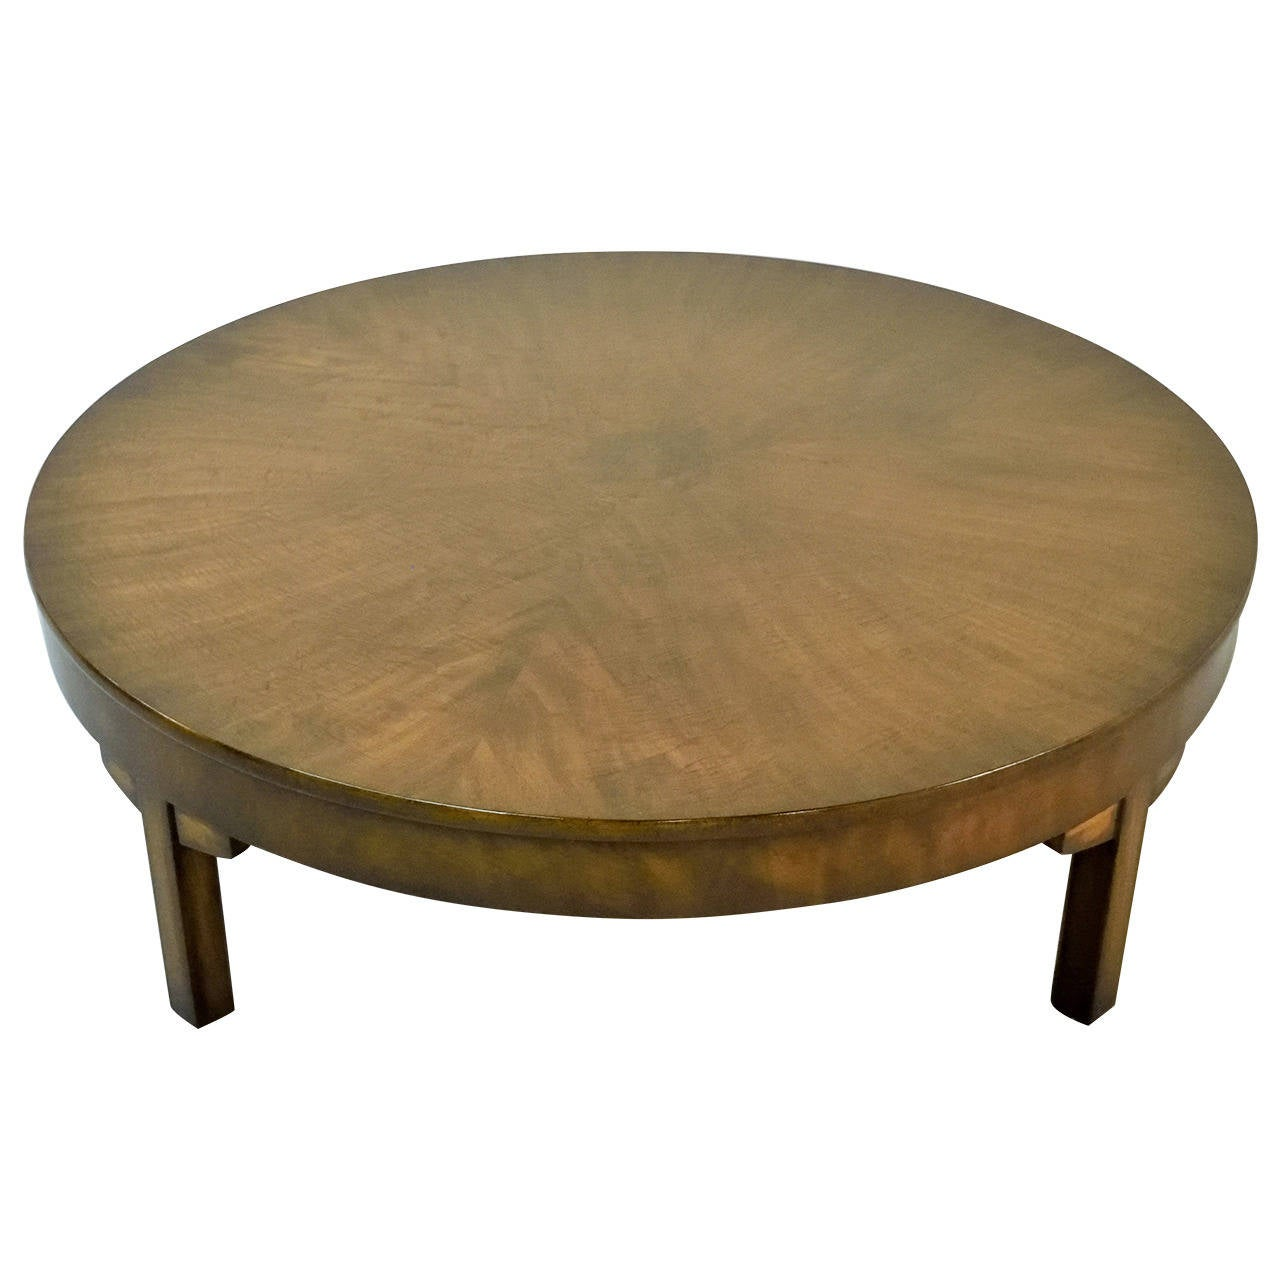 Edward Wormley For Dunbar Large Coffee Table At 1stdibs